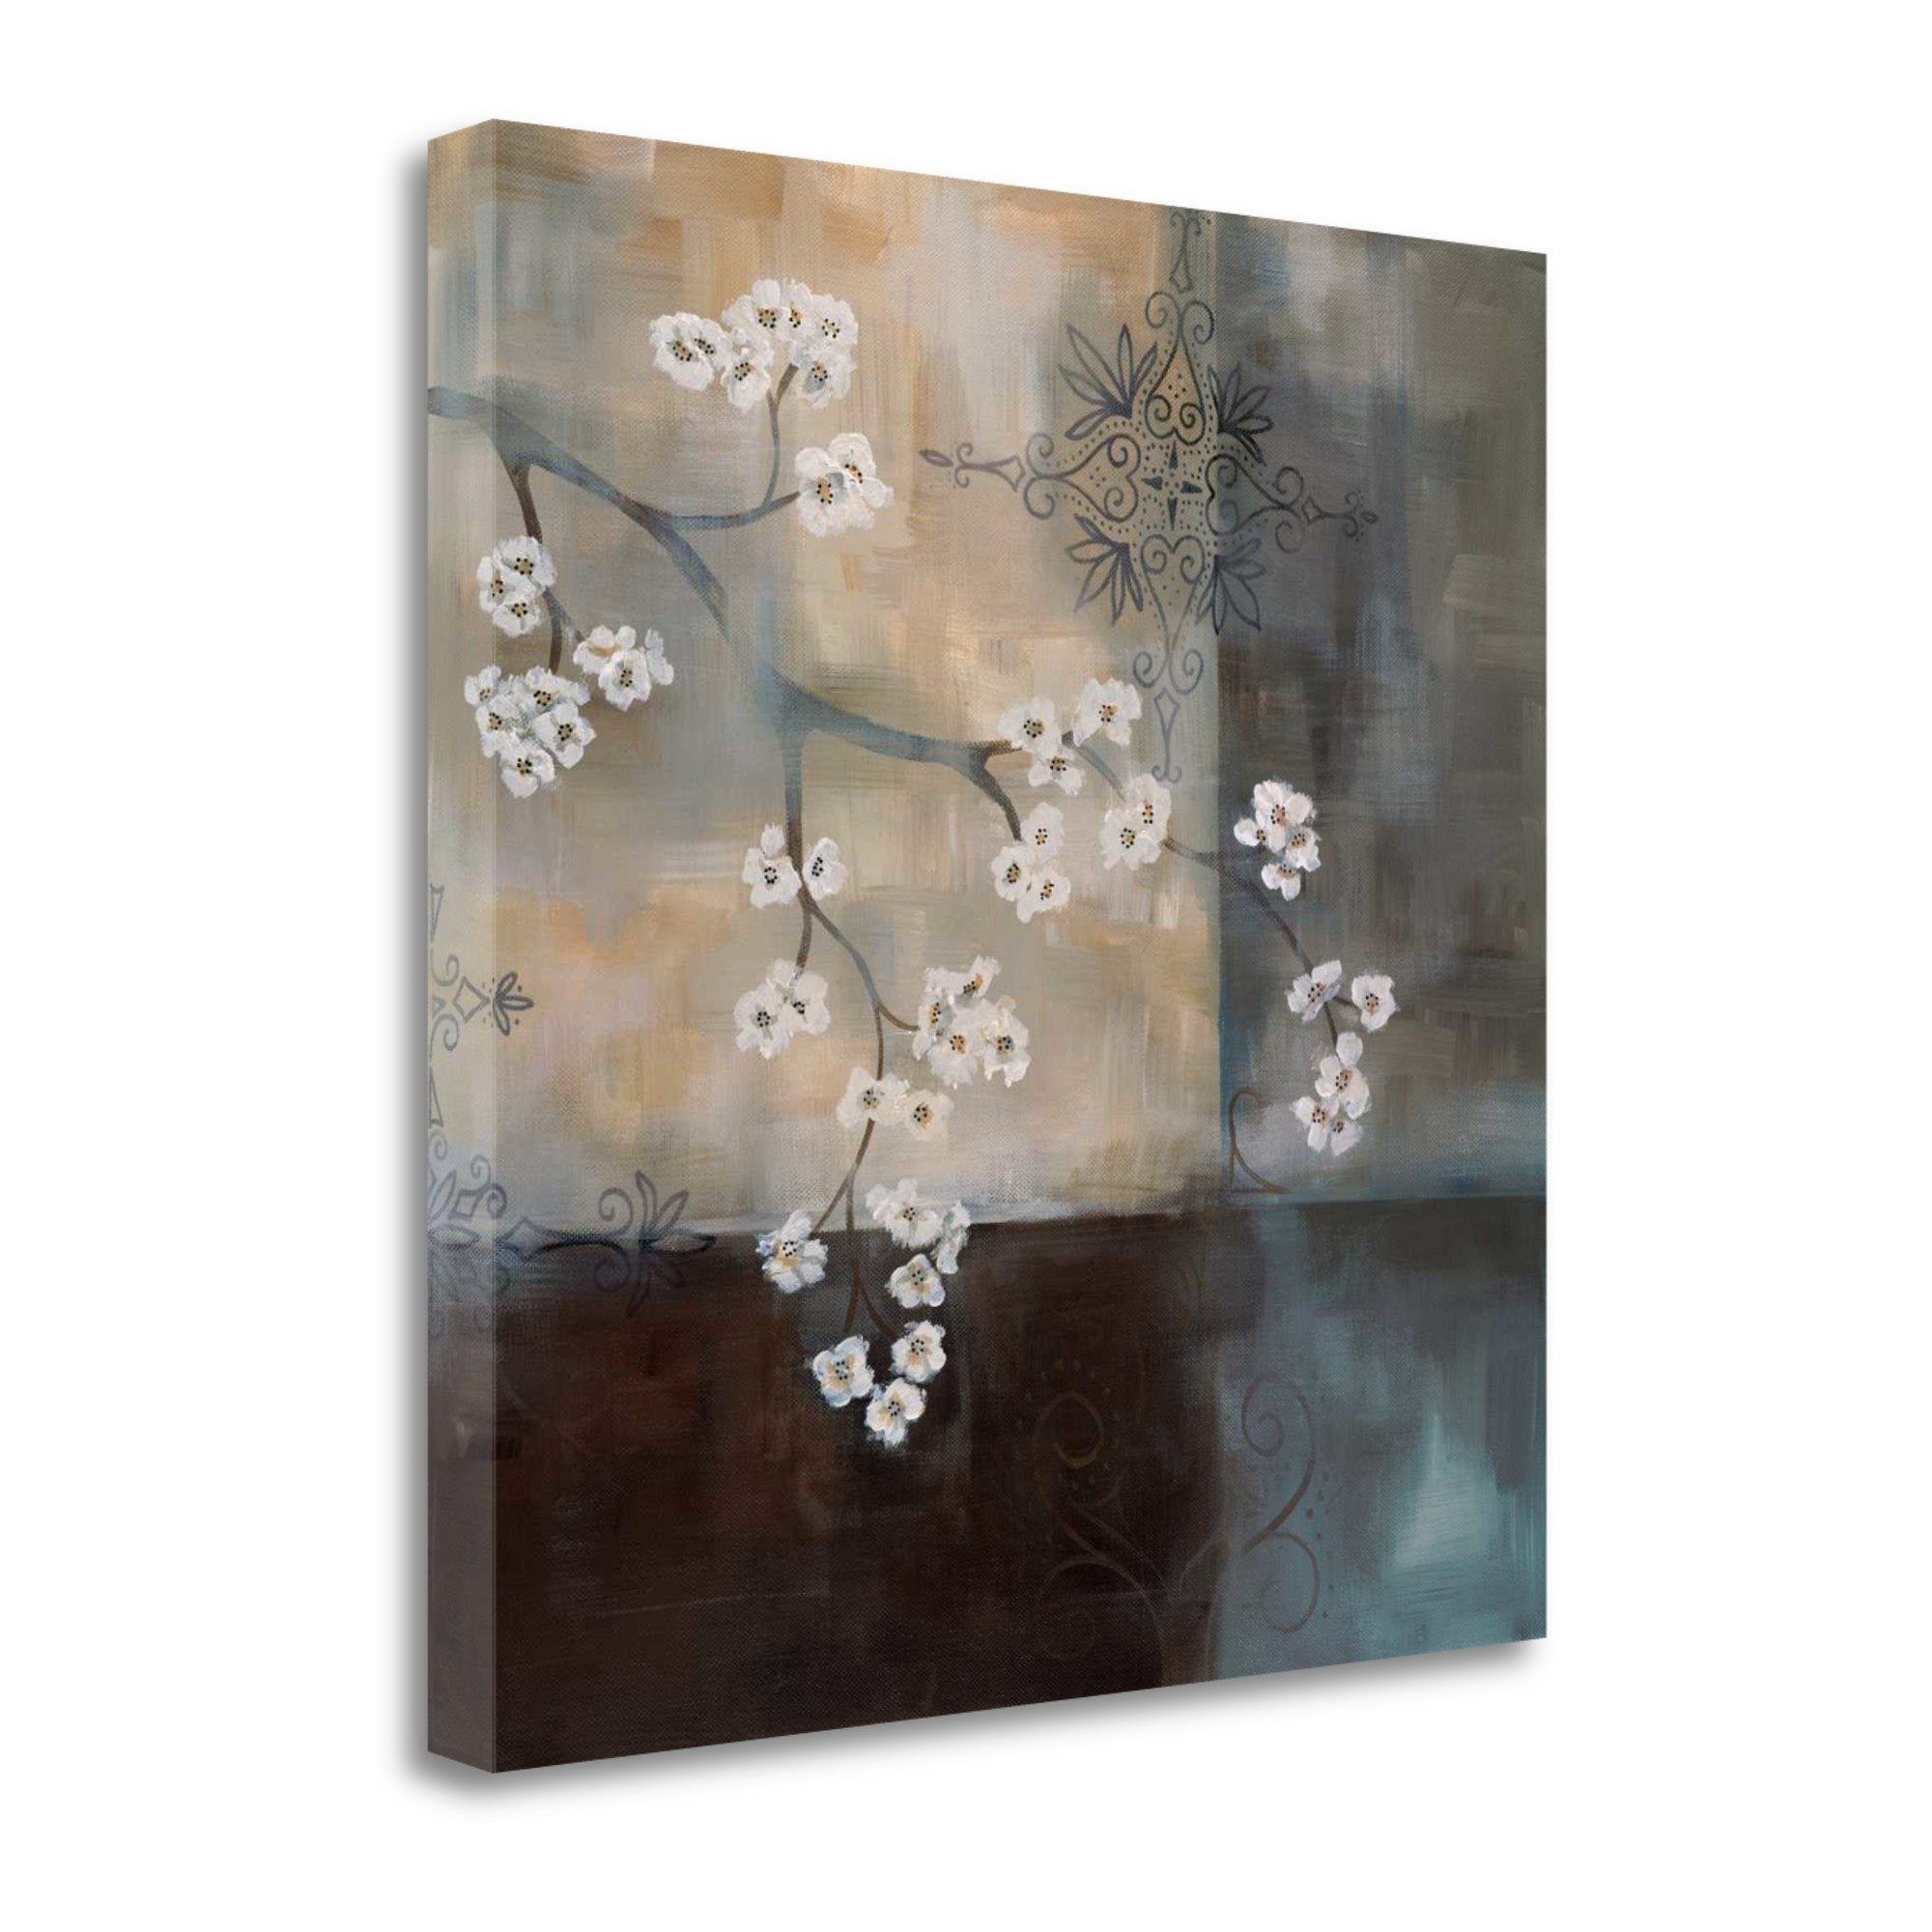 ''Spa Blossom II'' By Laurie Maitland, Fine Art Giclee Print on Gallery Wrap Canvas, Ready to Hang